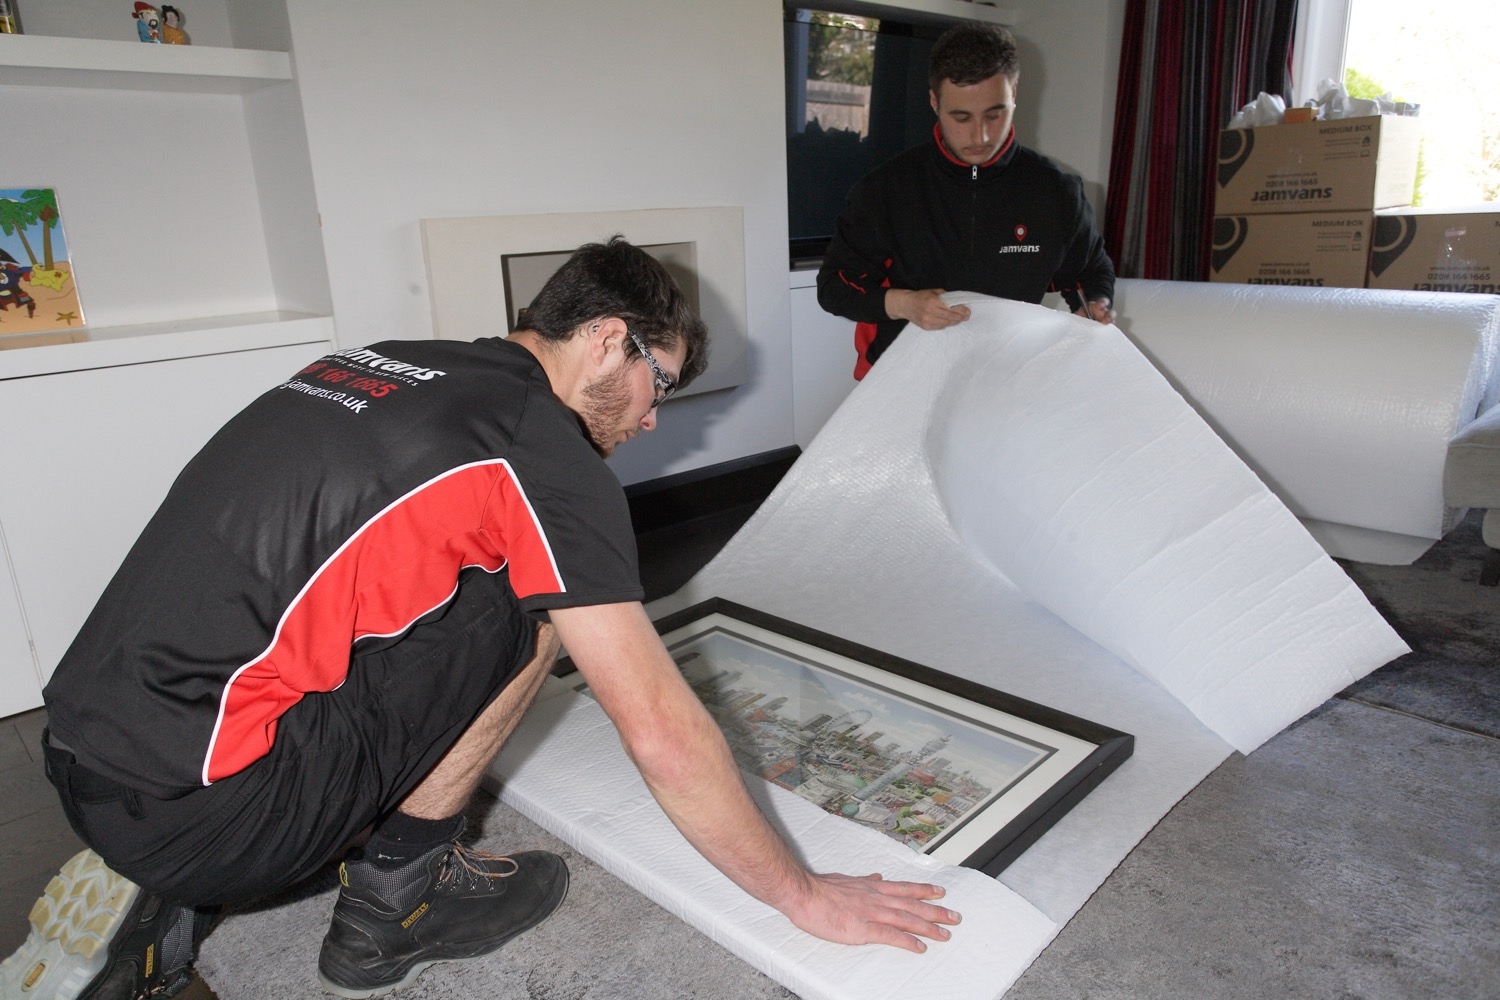 Removals man wrapping up a picture